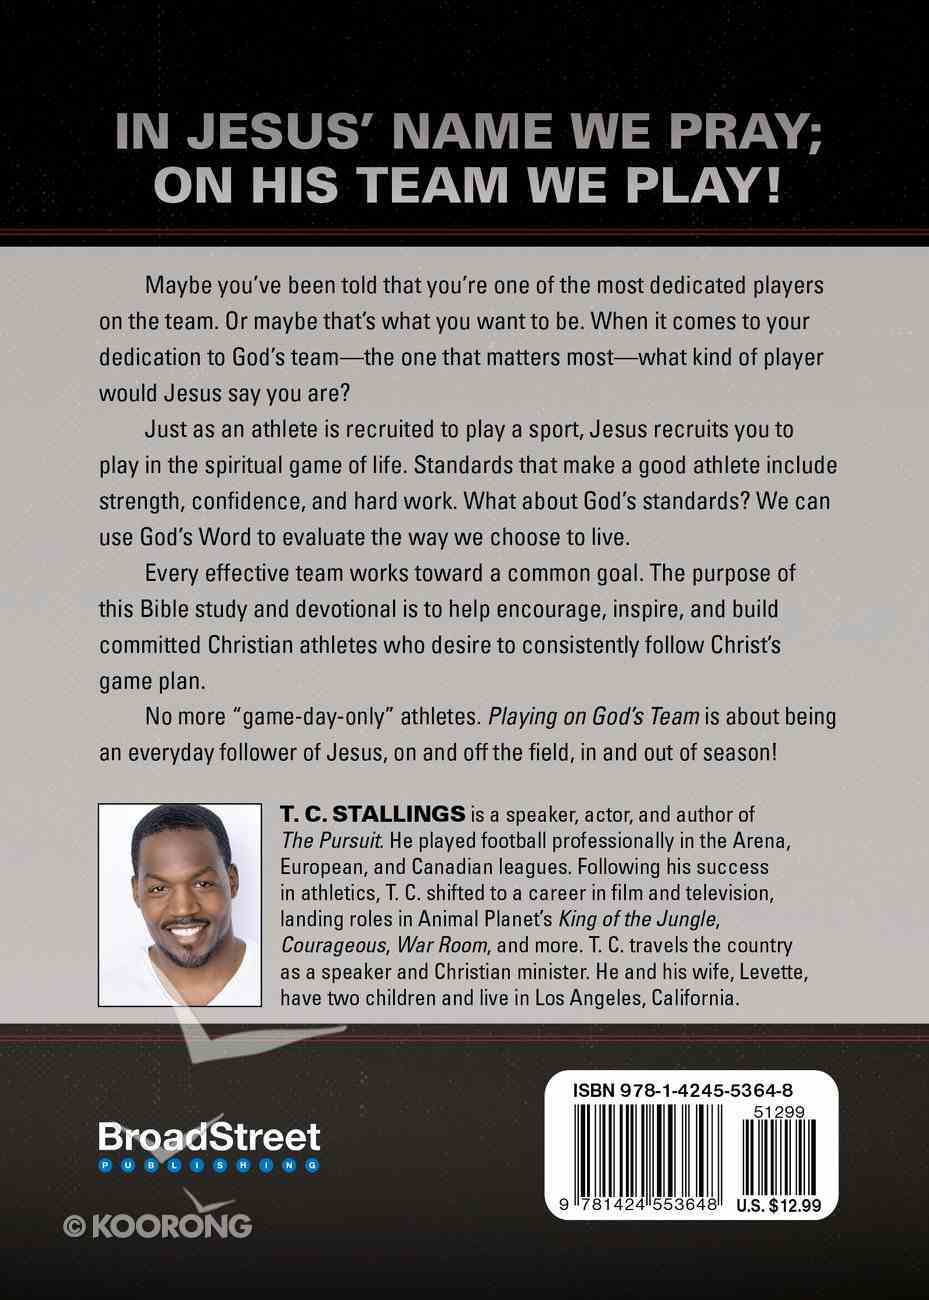 Playing on God's Team: 21-Week Devotional For Building True Christian Athletes Paperback